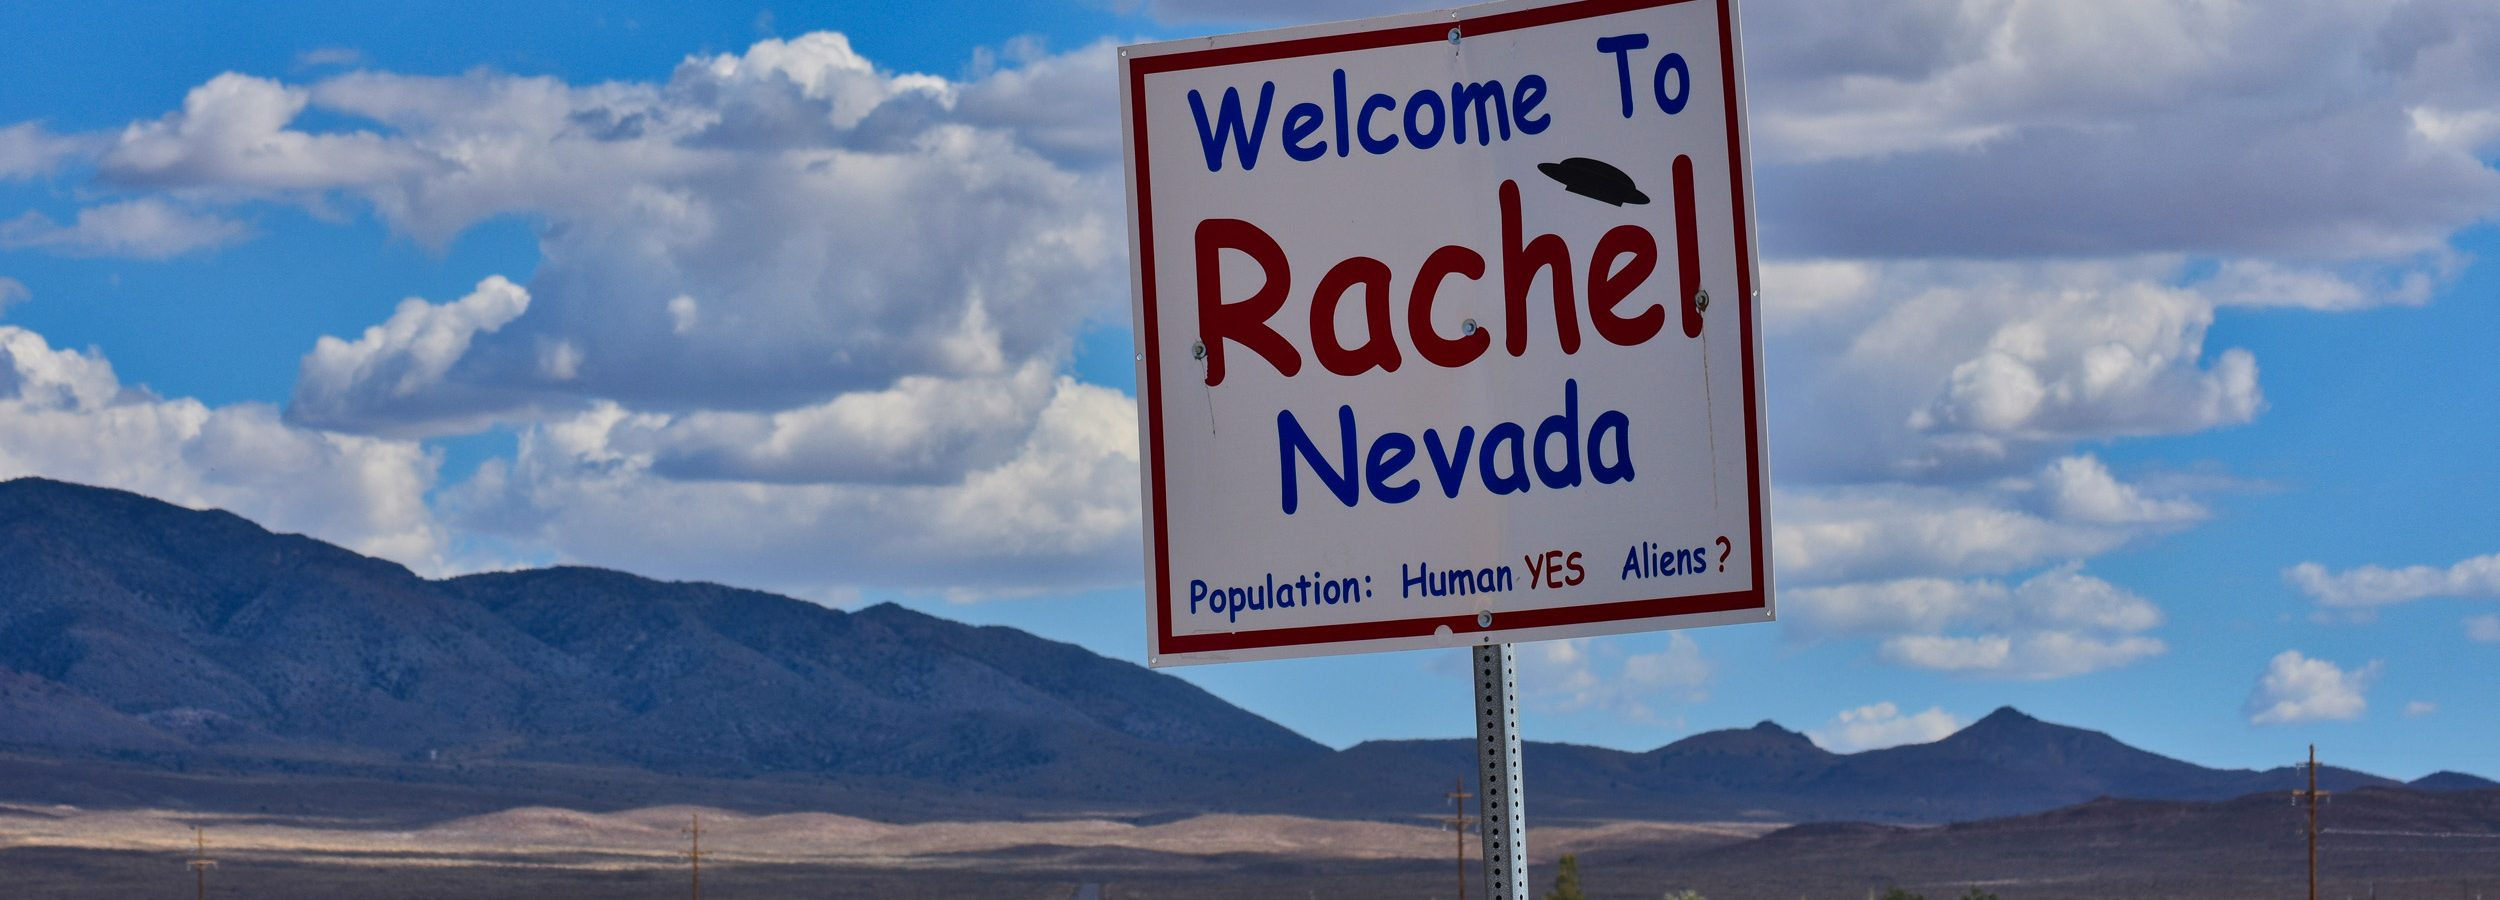 Welcome to Rachel, Nevada :)